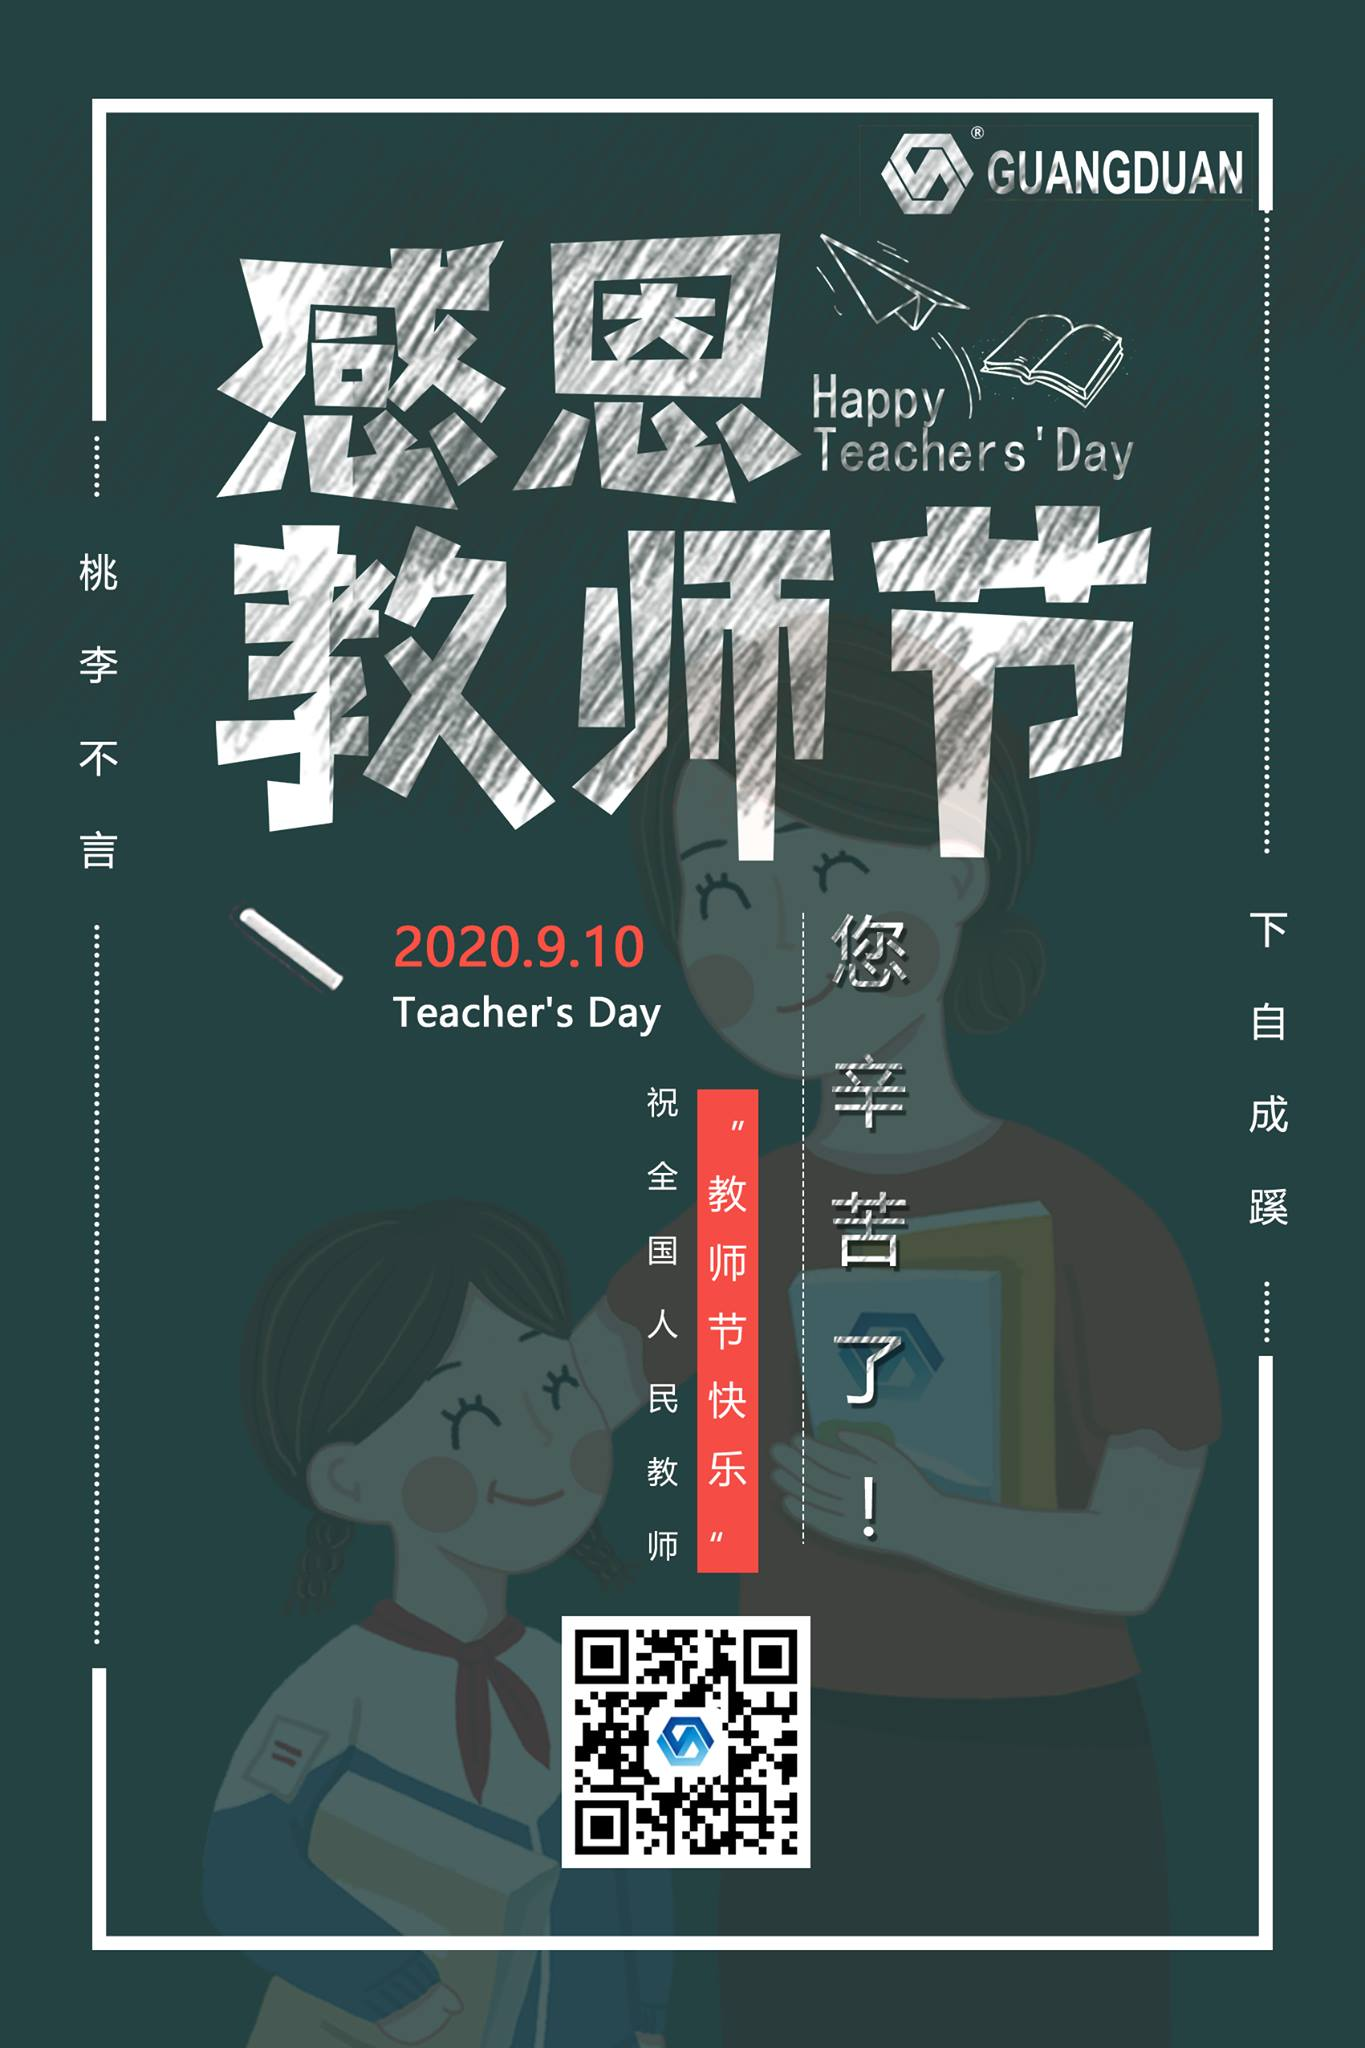 Happy Teachers' Day.